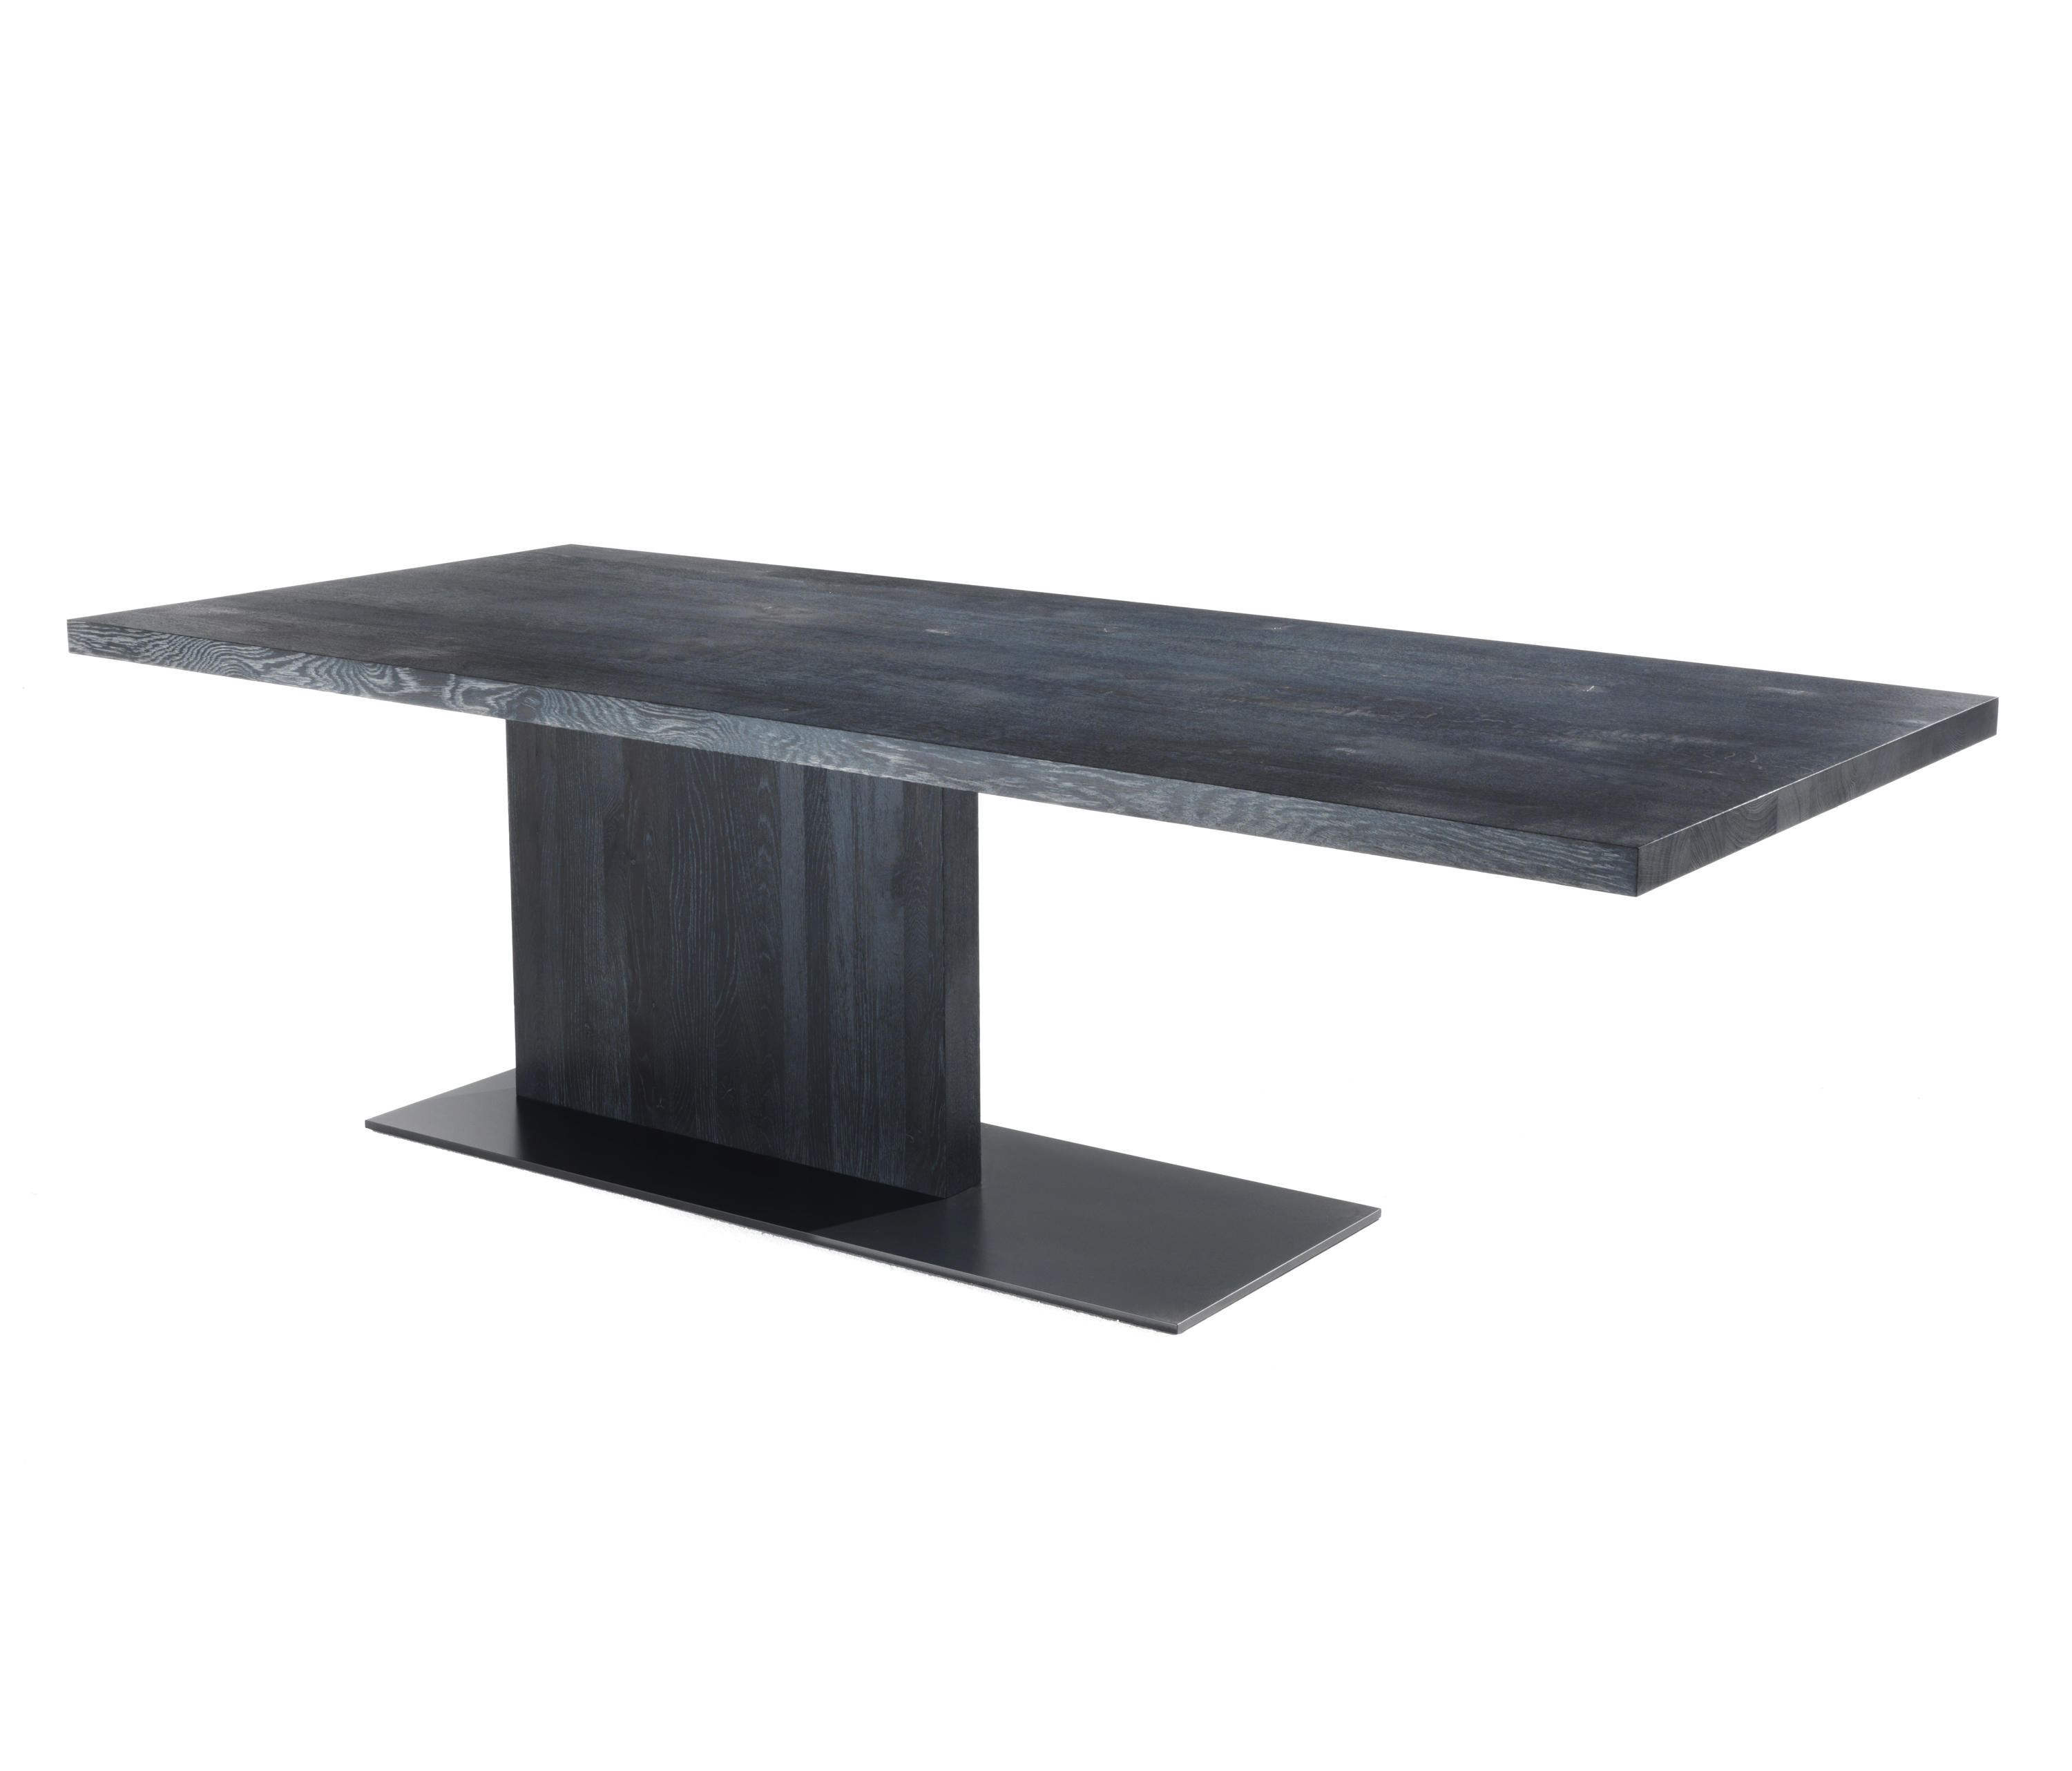 Riva Tisch Liam ~ Liam Wood  Restaurant tables by Riva 1920  Architonic